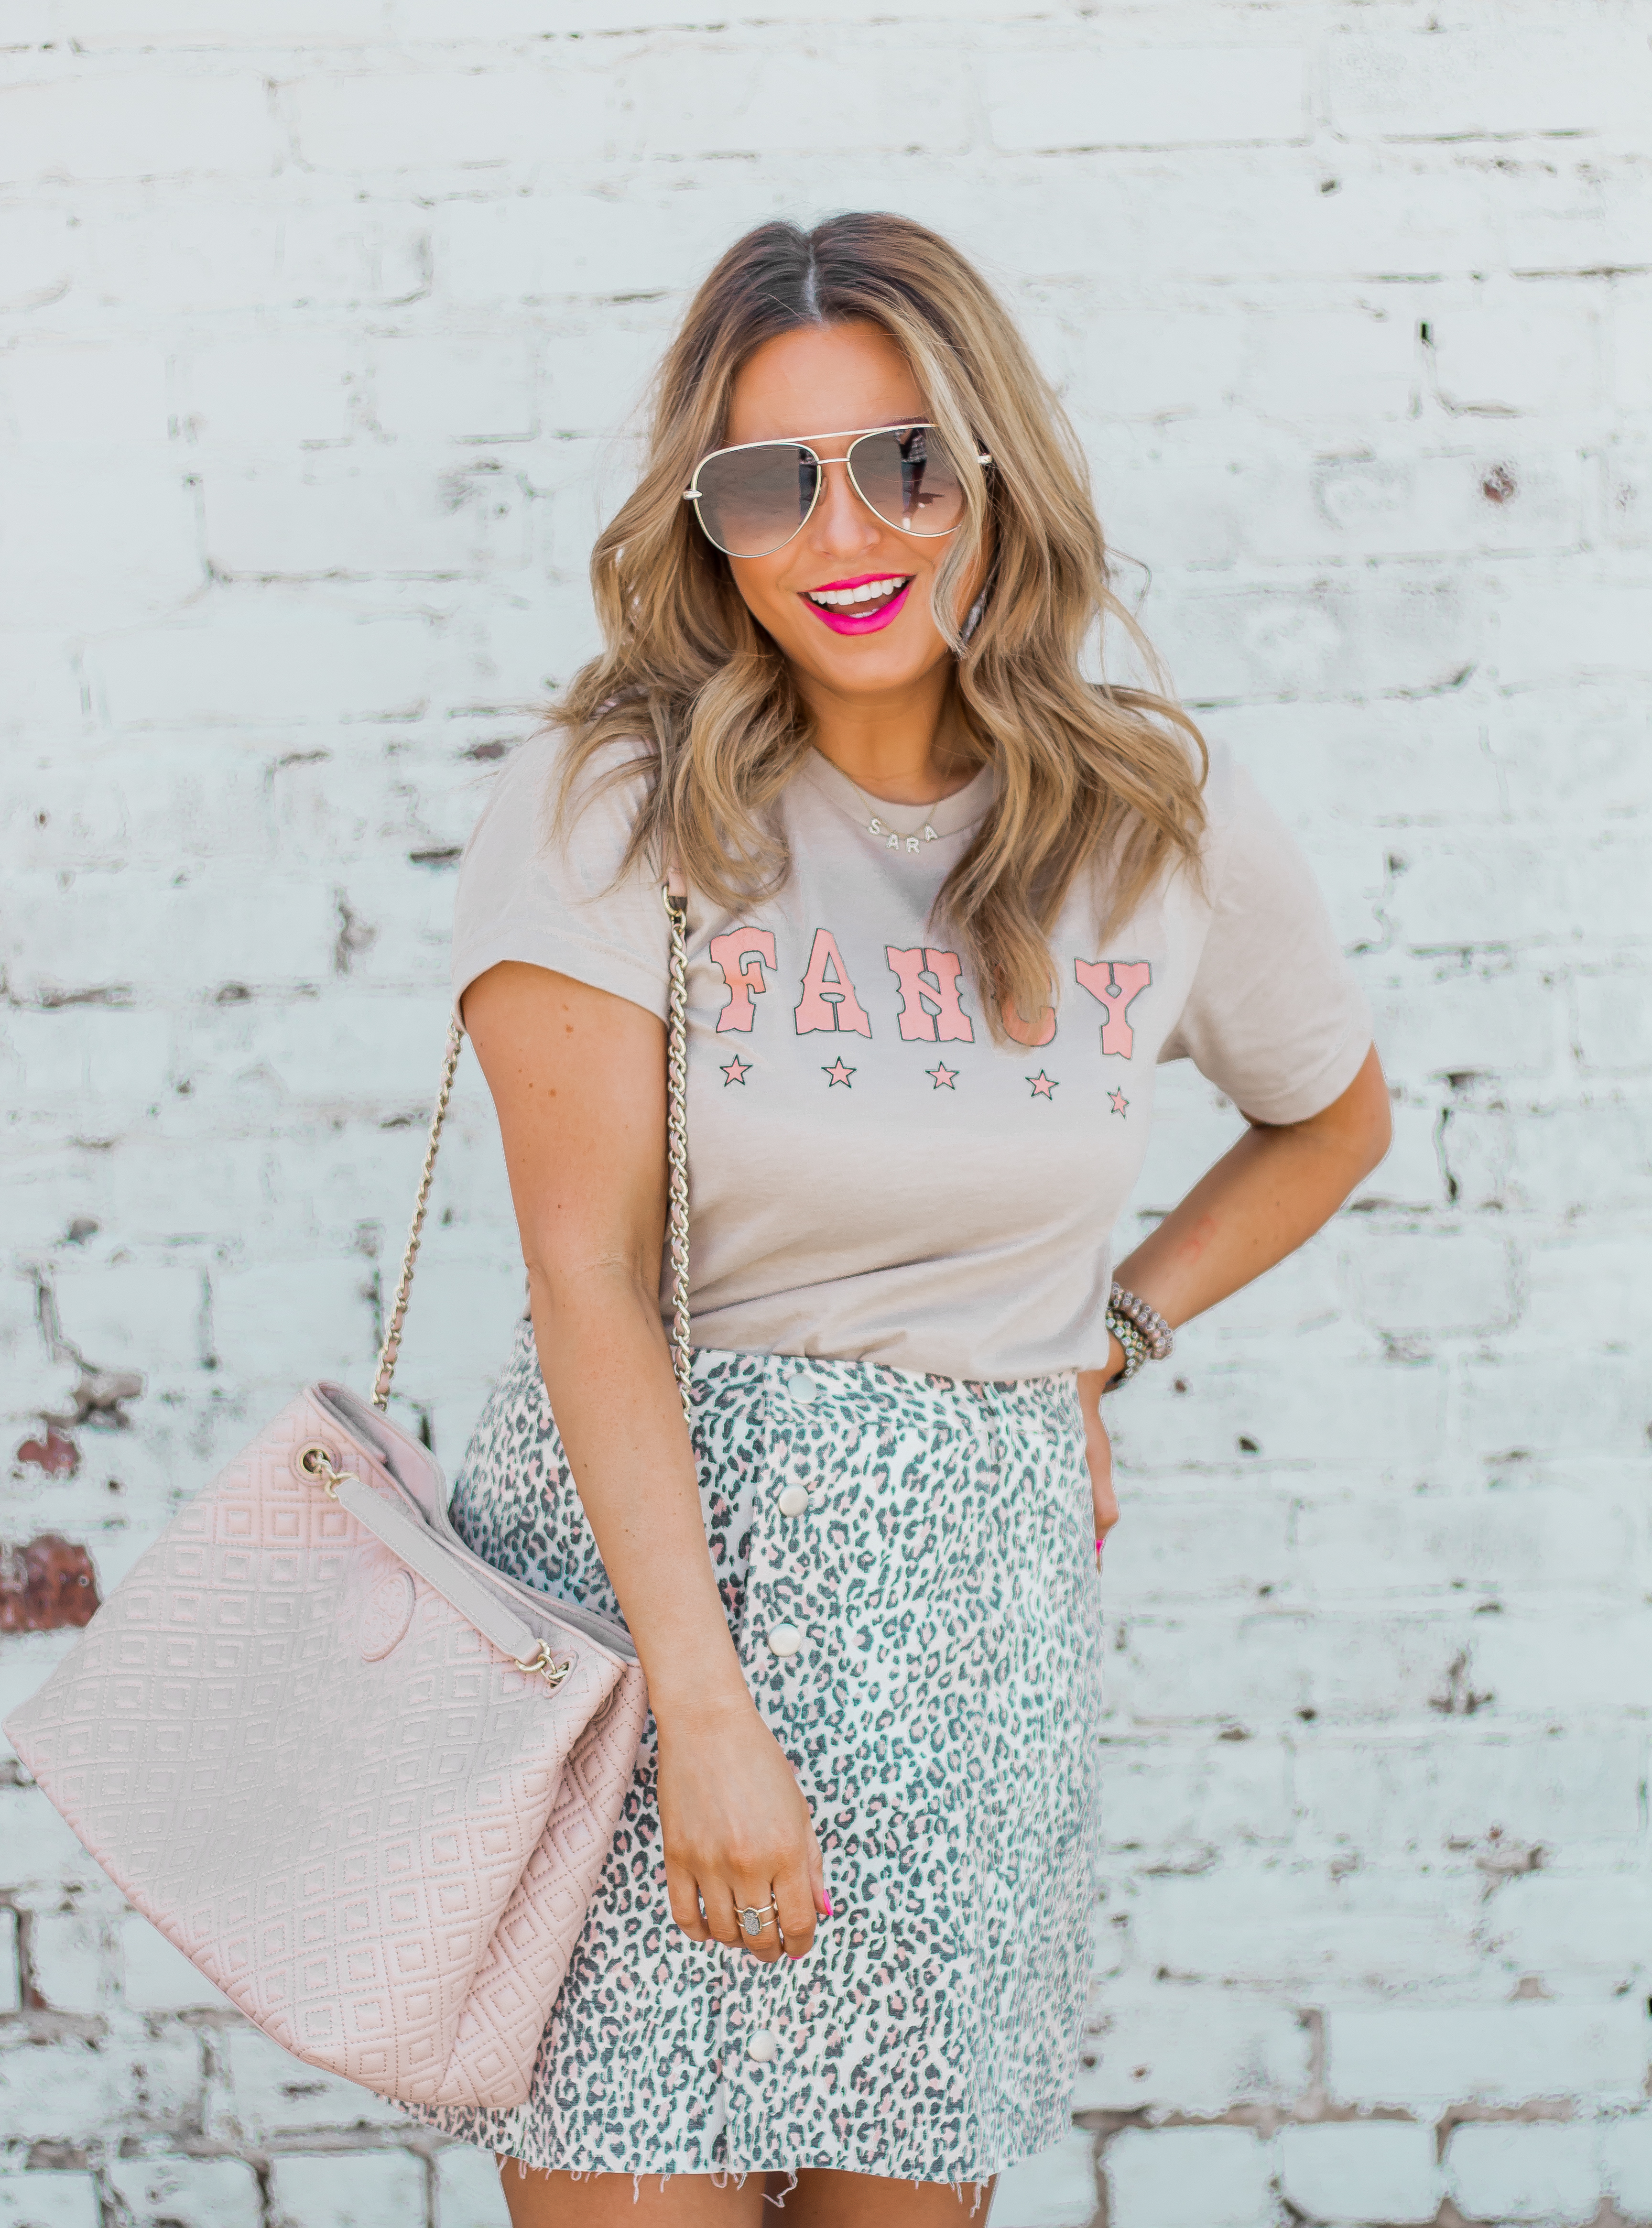 Fancy Graphic Tee-Leopard Skirt-Sugar Boutique-$250 Gift Card Giveaway-Tory Burch Fleming Bag-Quay Sunglasses-Sabby Style-Omaha Blogger-Women's Fashion-Spring Fashion-Summer Outfit-6